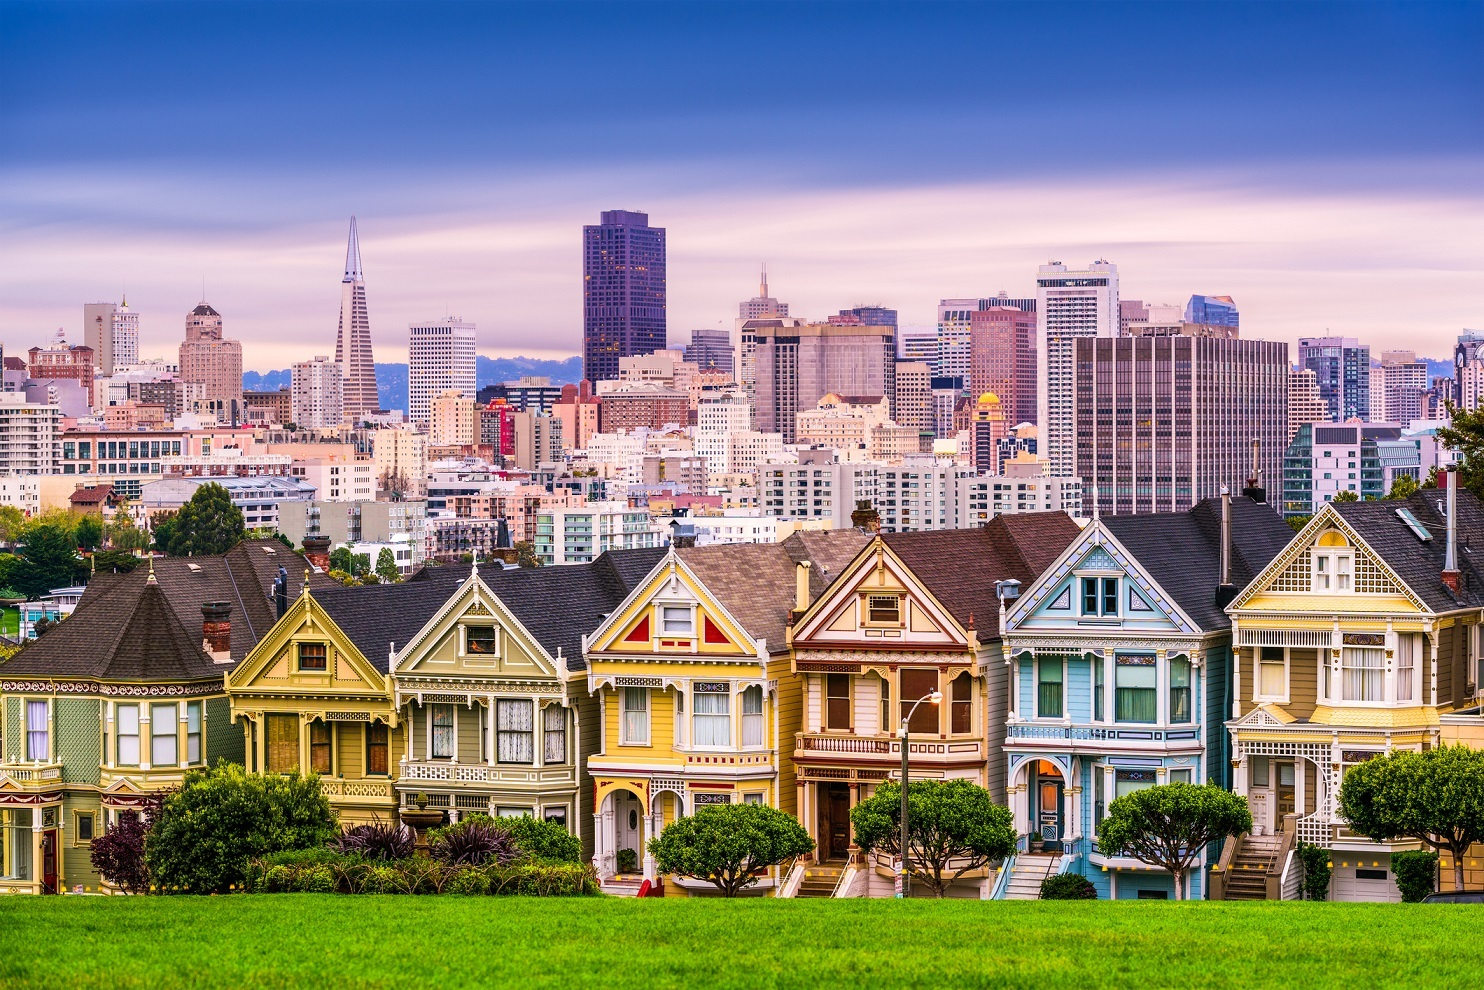 San Francisco Skyline with painted ladies